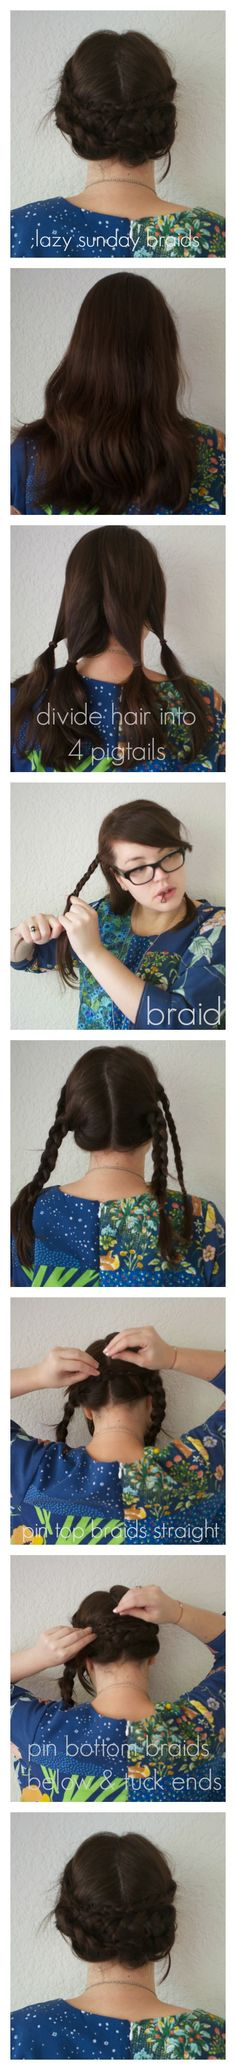 Lazy Sunday Braids - Frocks & Frou Frou. This is a good tutorial for hair the length of mine. Yay!